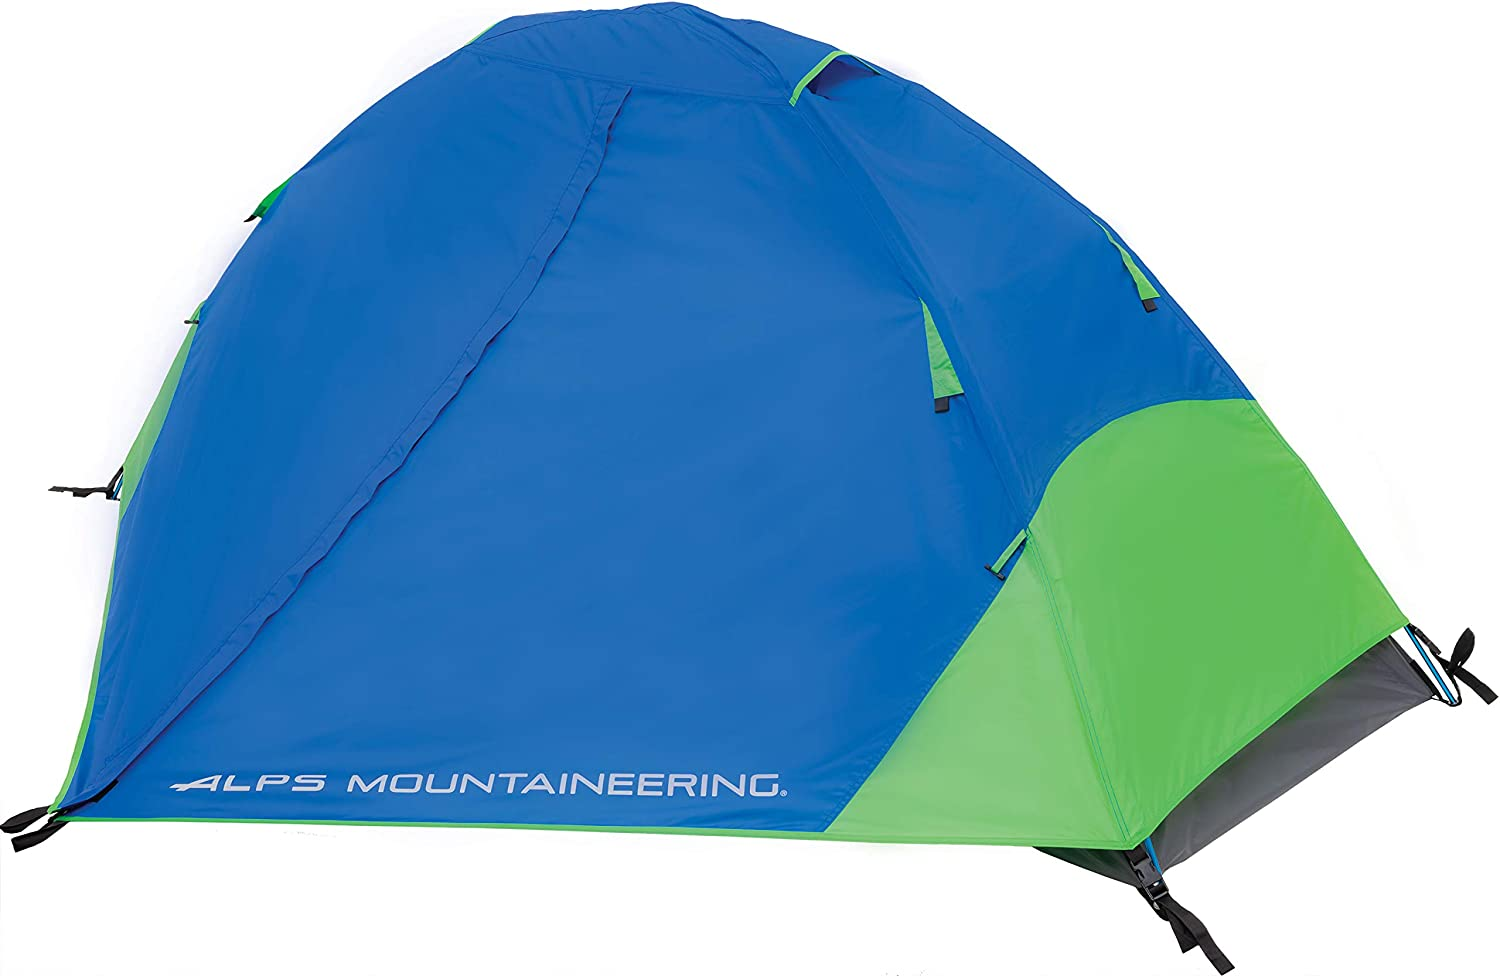 ALPS tent review